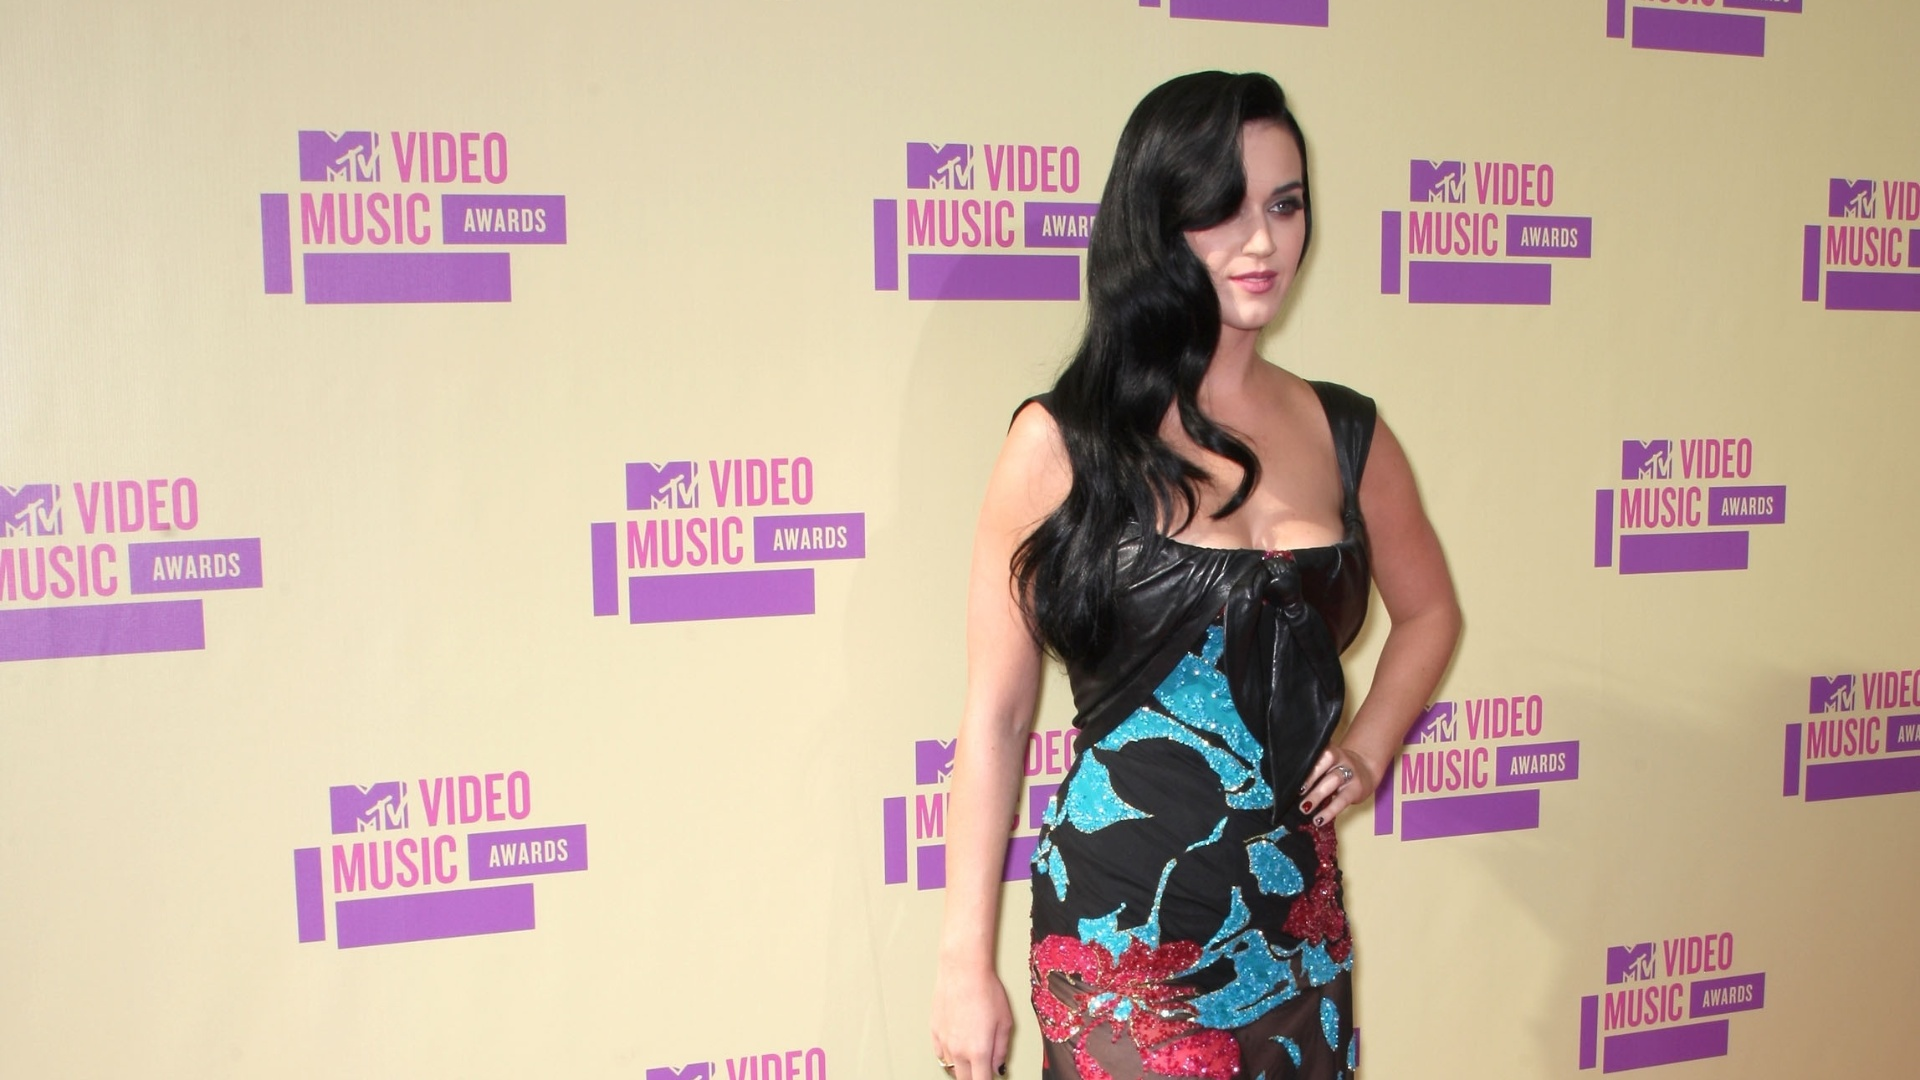 A cantora Katy Perry participa do MTV Video Music Awards 2012 no Staples Center, em Los Angeles